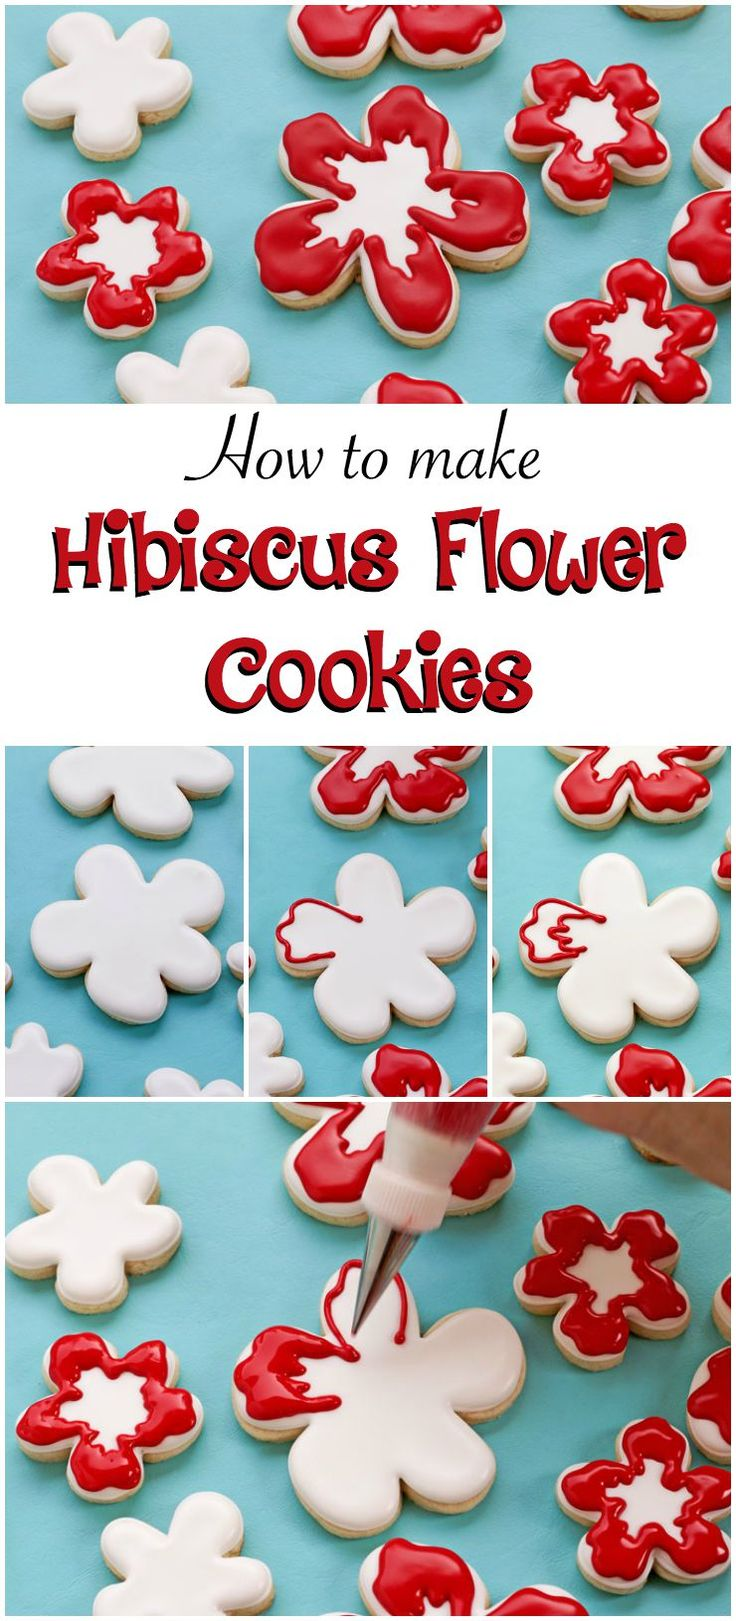 How to Make Fun Hibiscus Cookies via www.thebearfootbaker.com